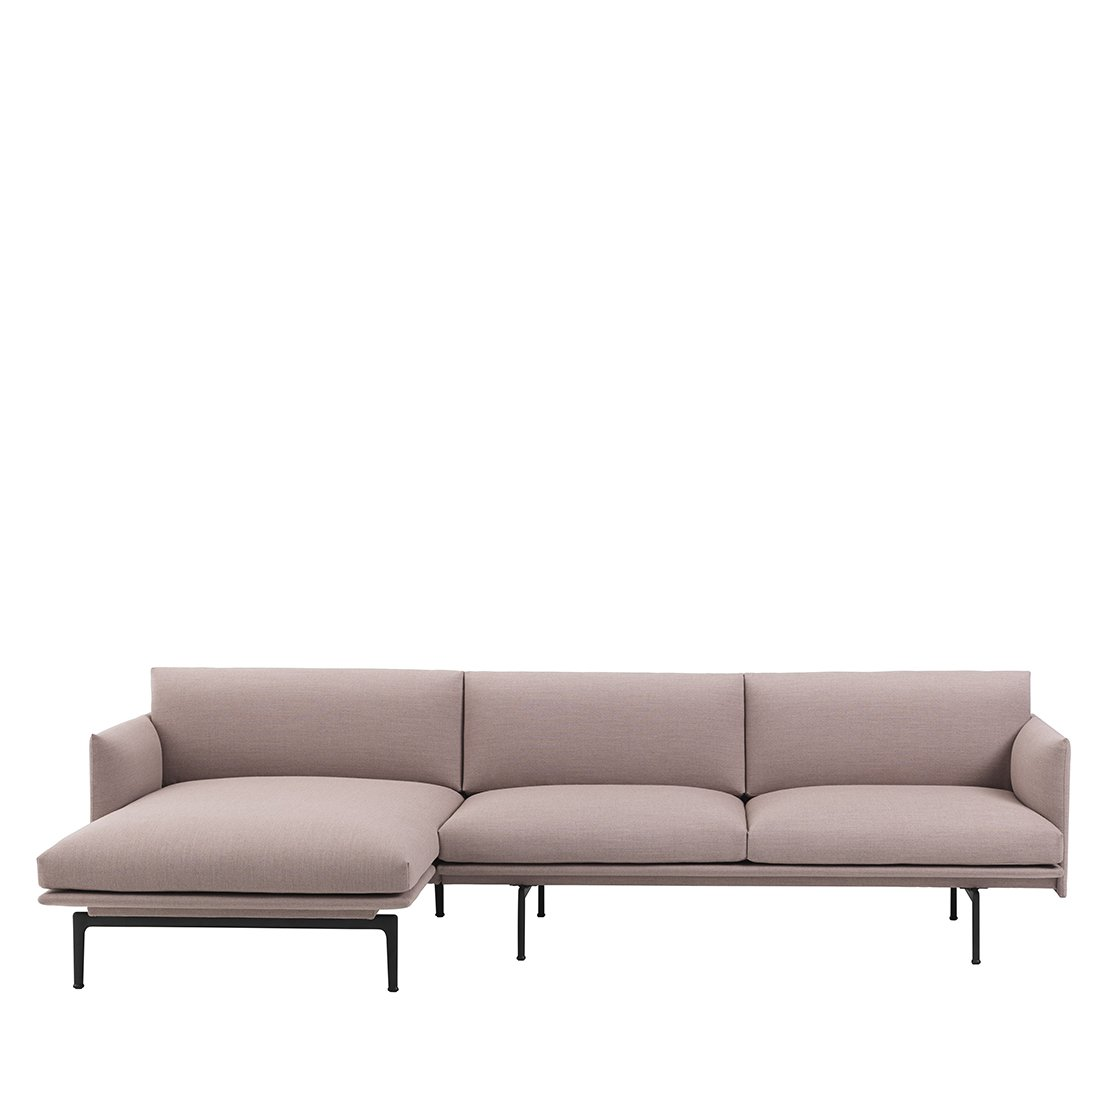 Muuto Outline Bank met Chaise Longue Links - Fiord 551